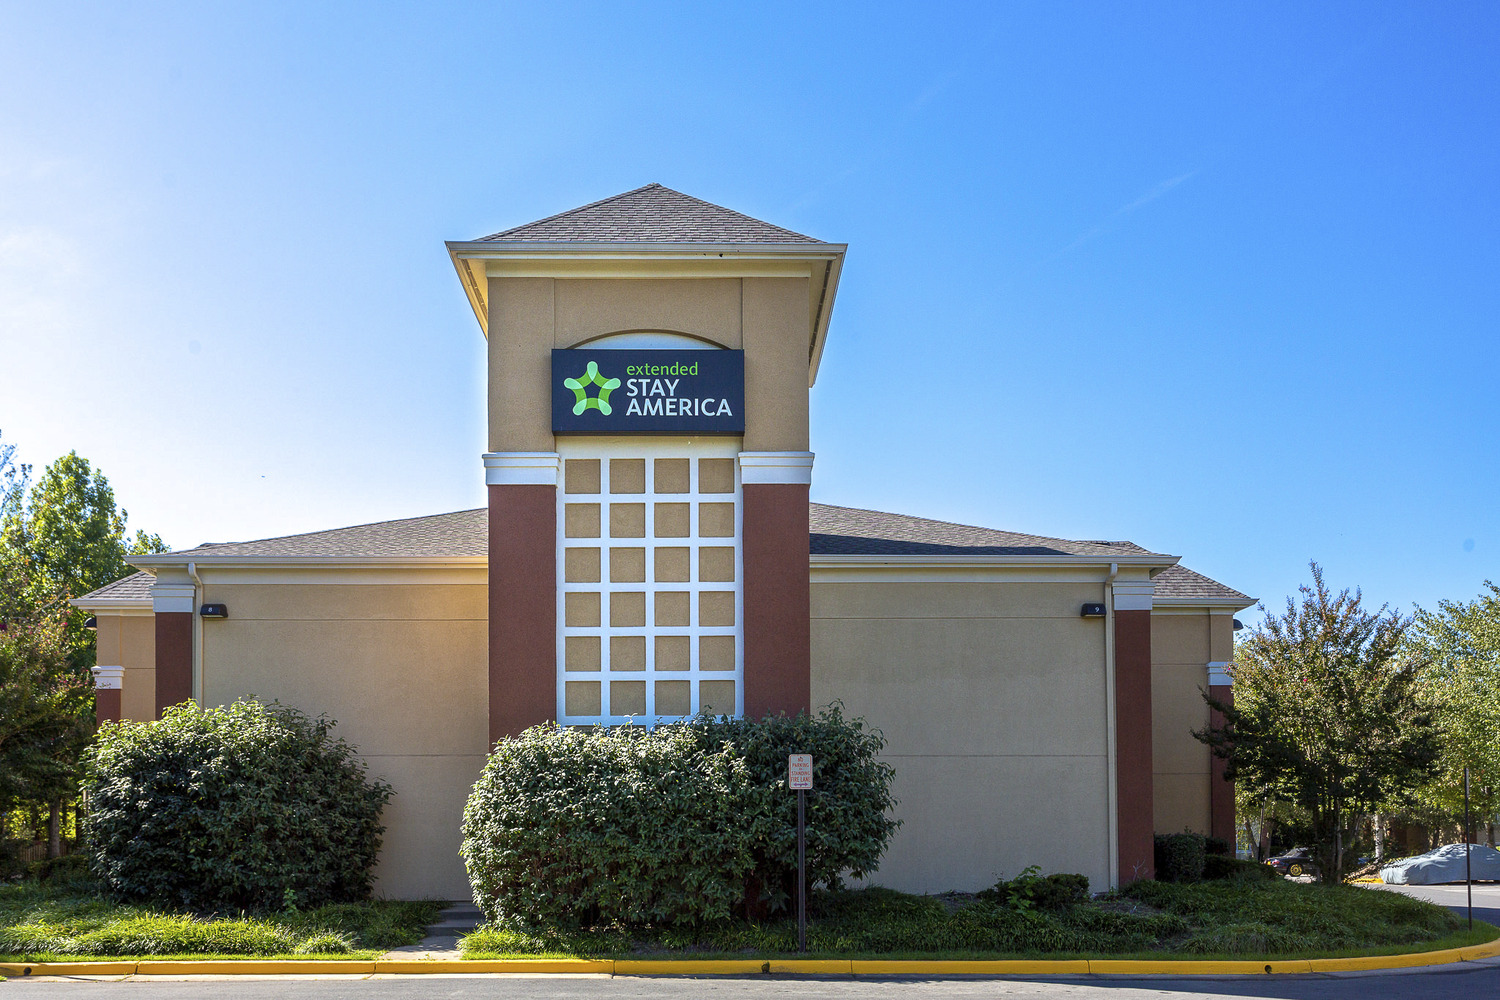 CBG builds Extended Stay America at Dulles, a 127-Unit Extended Stay Hotel in Sterling, VA - Image #2